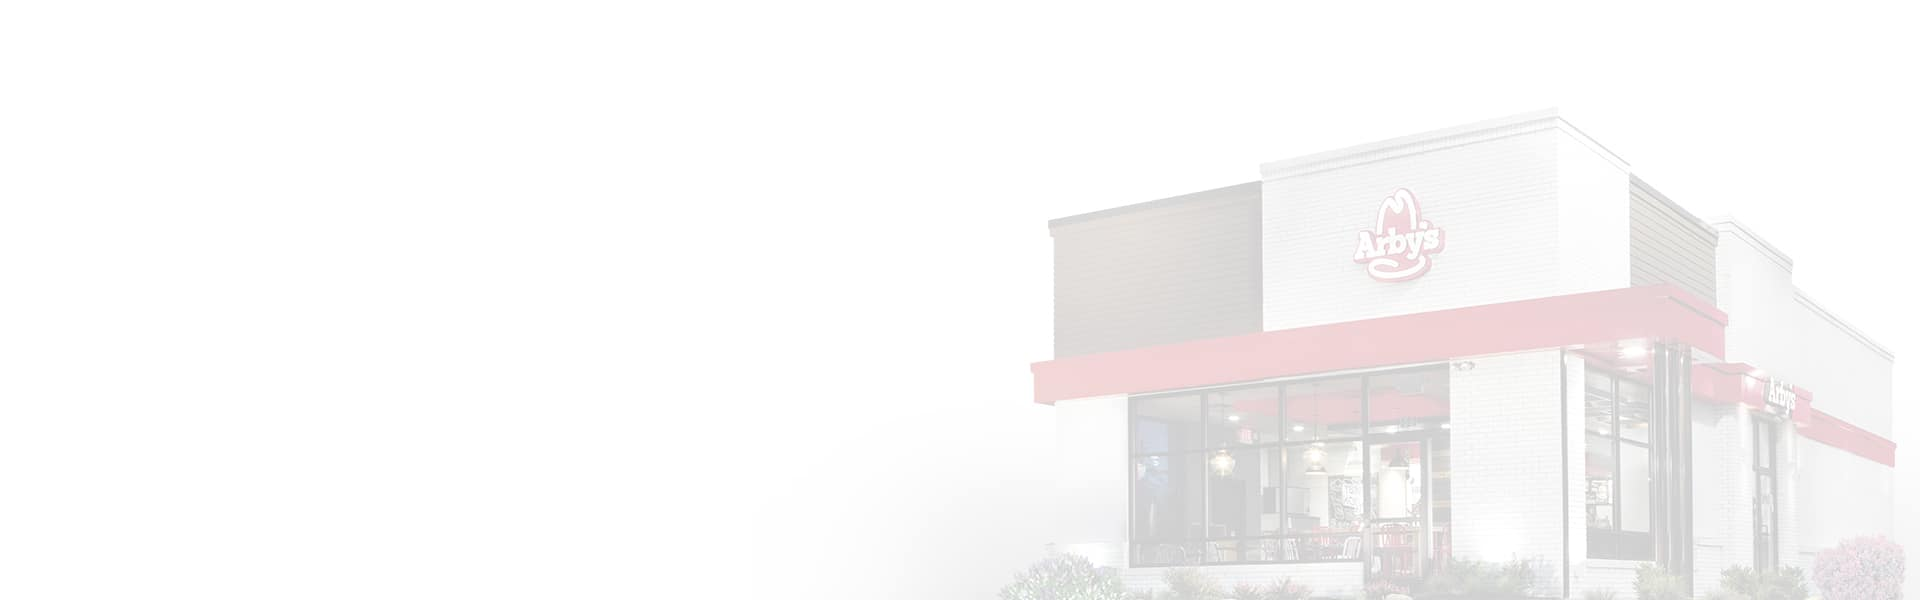 Franchise Business Plan – Arby's